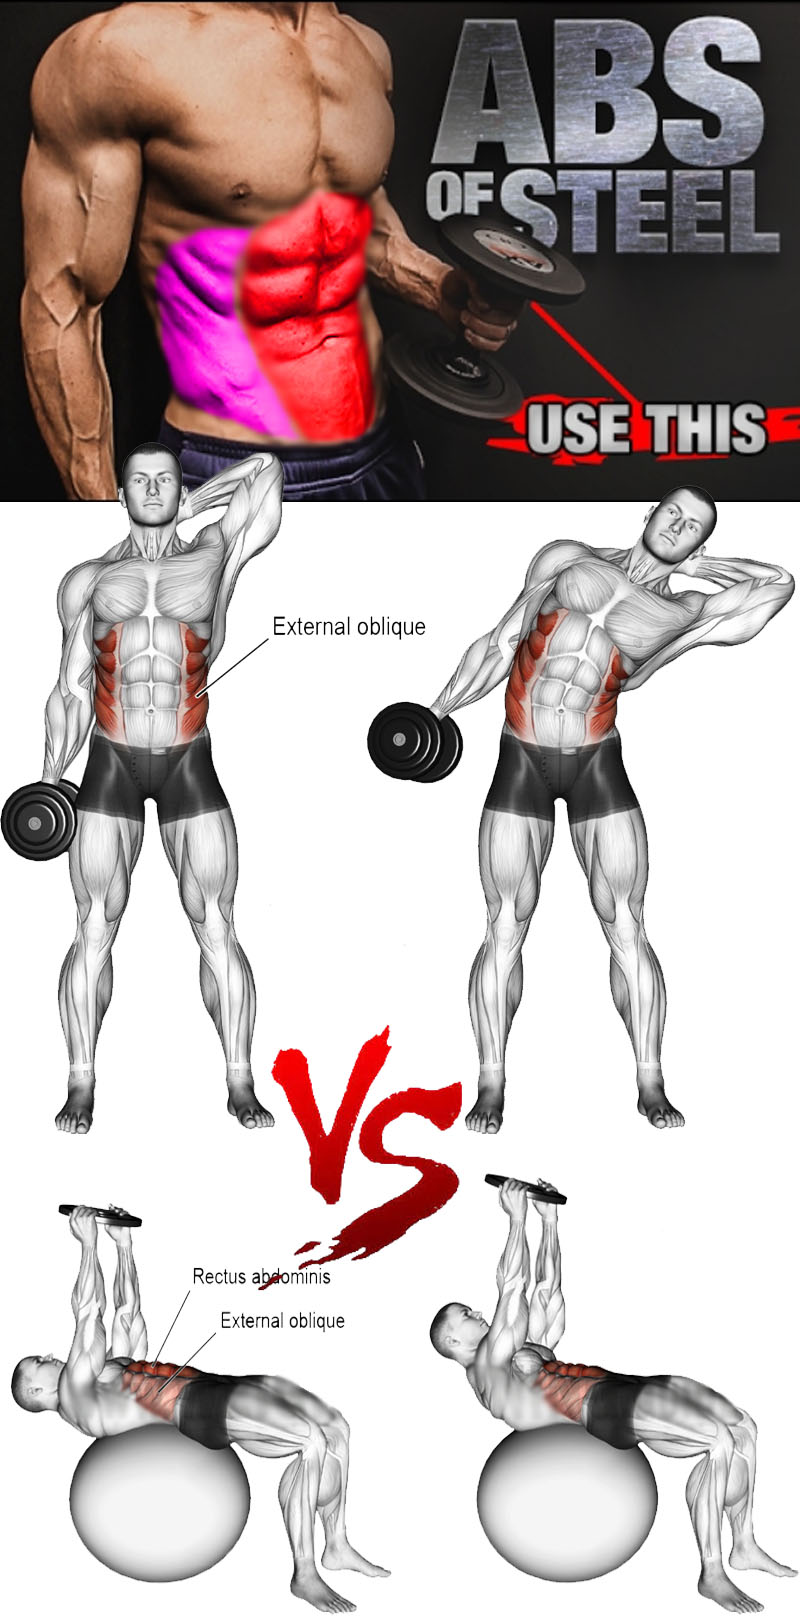 Dumbbell side bend VS Weighted stability ball crunch